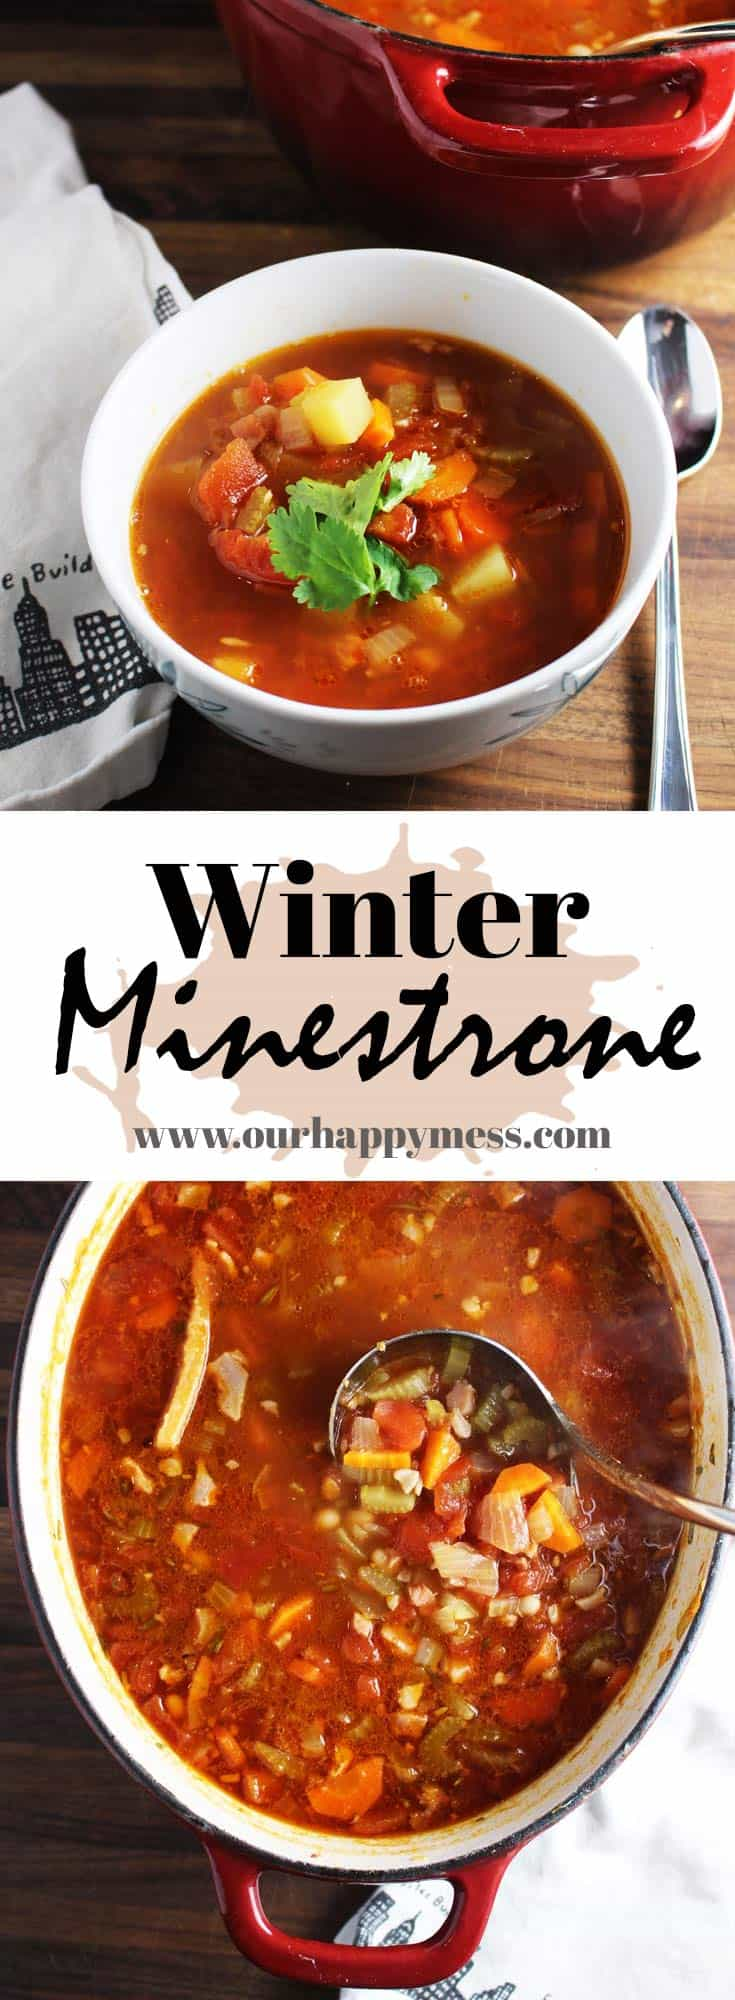 This minestrone soup recipe is chock full of chunky veggies, beans, and pancetta. Simmering with a parmesan rind gives it rich, salty flavor. Serve this winter minestrone with some garlic bread, and you have a simple, delicious, healthy and satisfying meal. #soup #souprecipes #minestronesoup